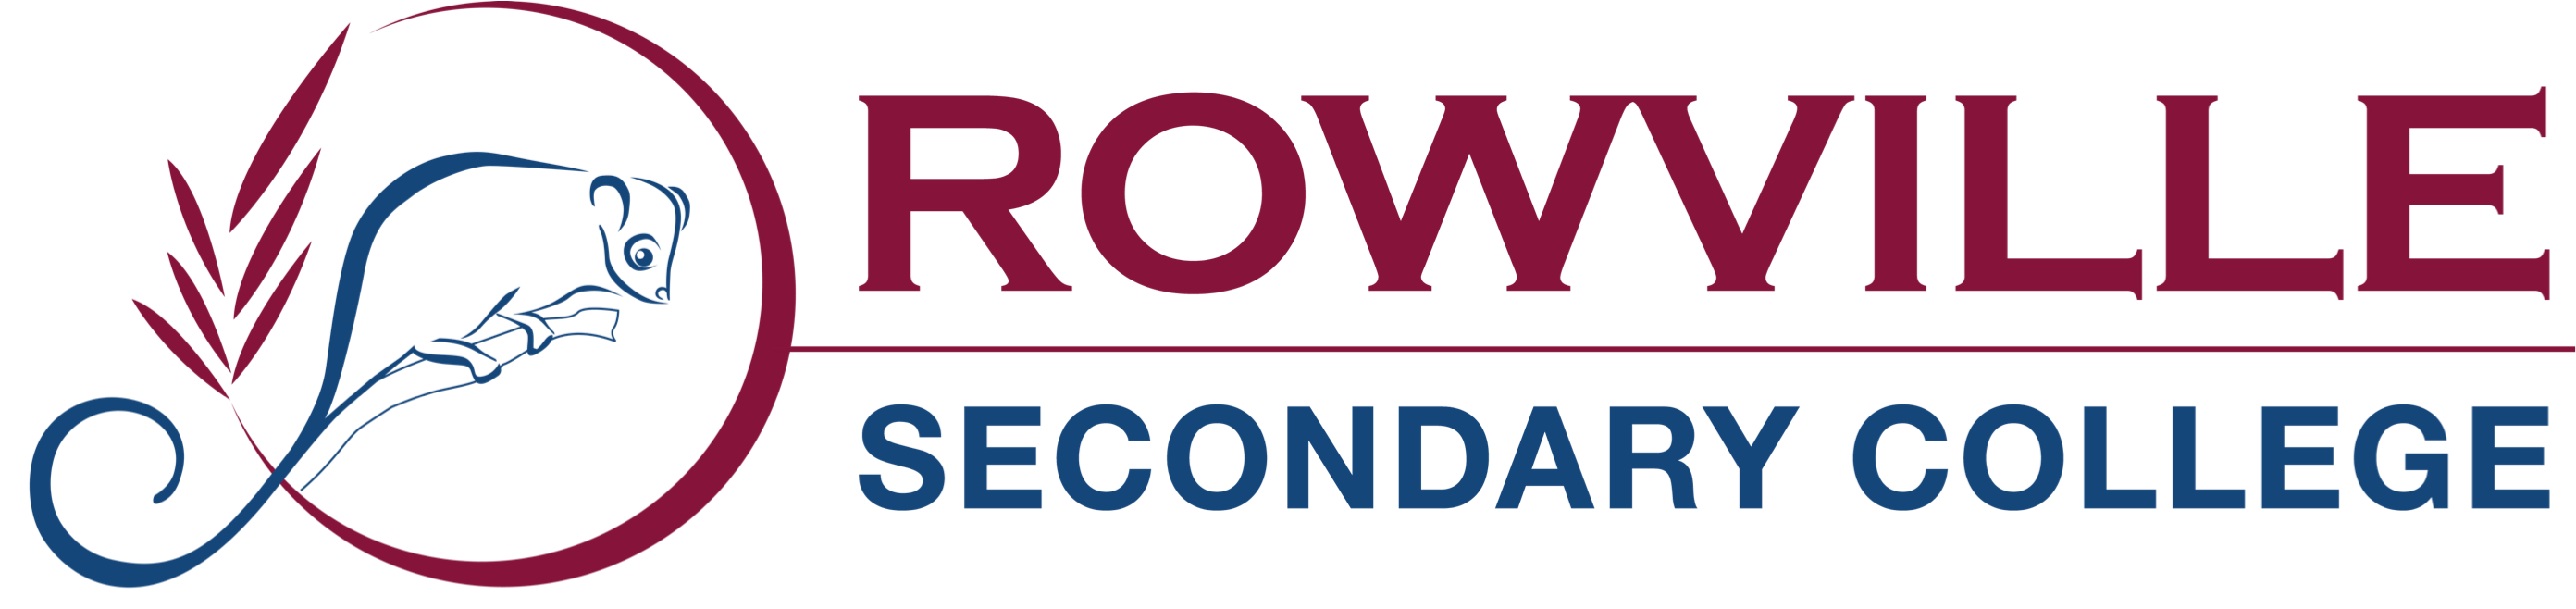 Rowville Secondary College logo